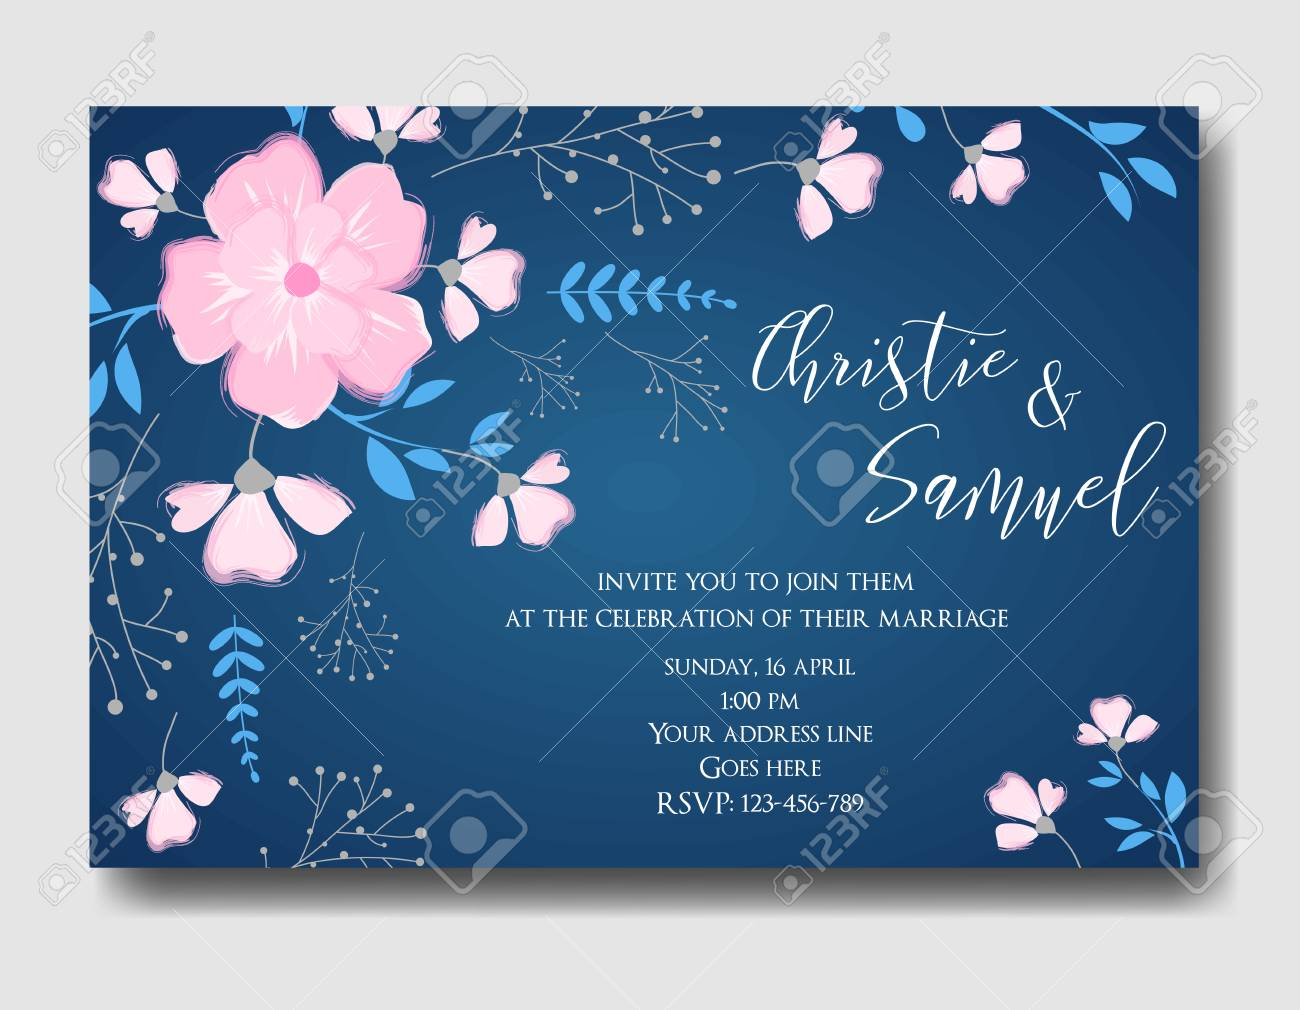 Wedding Invitation Card Template With Abstract Bouquet Flowers